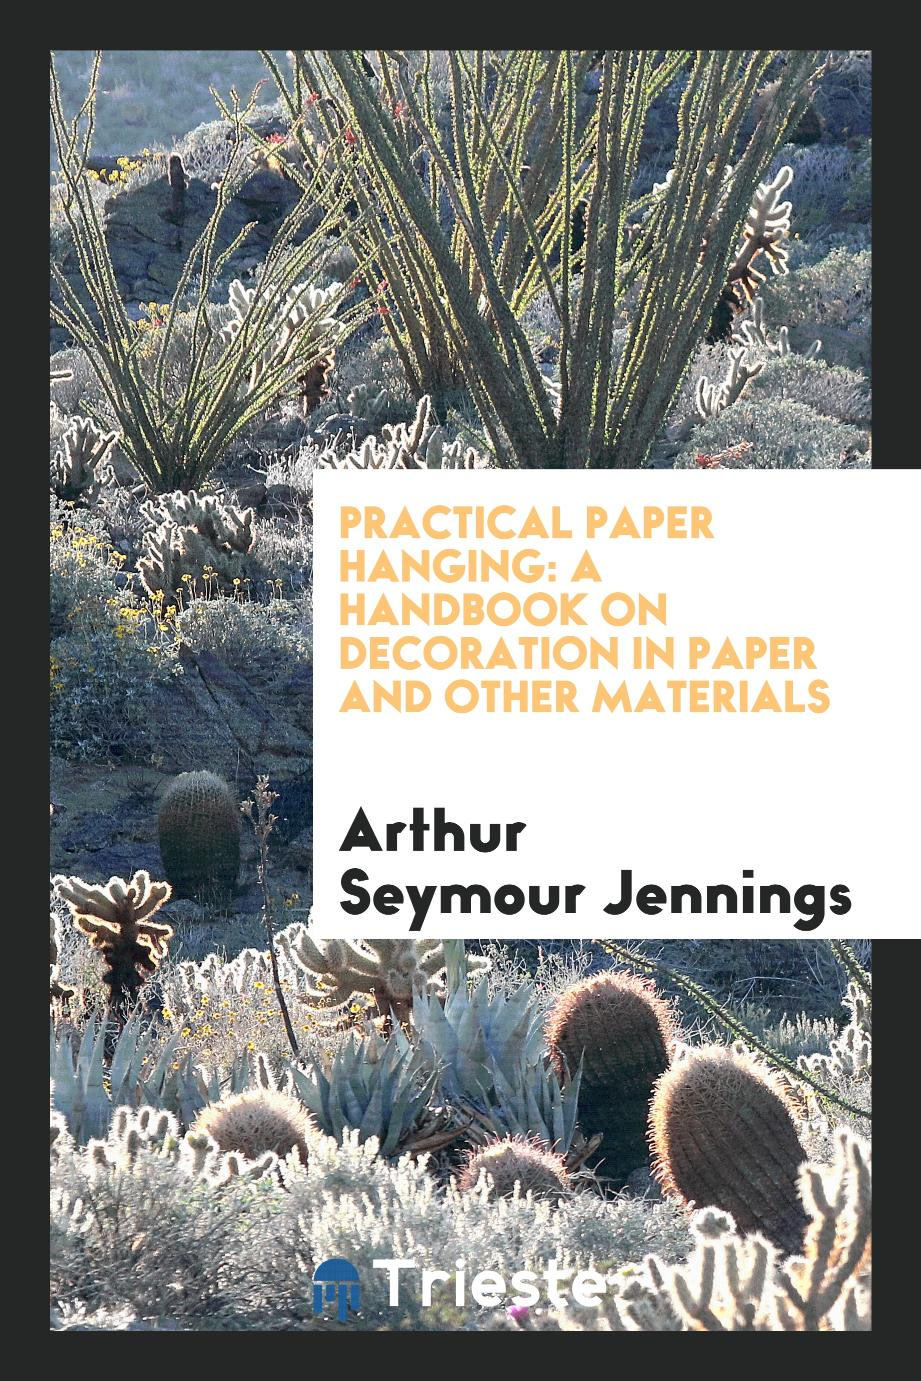 Practical Paper Hanging: A Handbook on Decoration in Paper and Other Materials